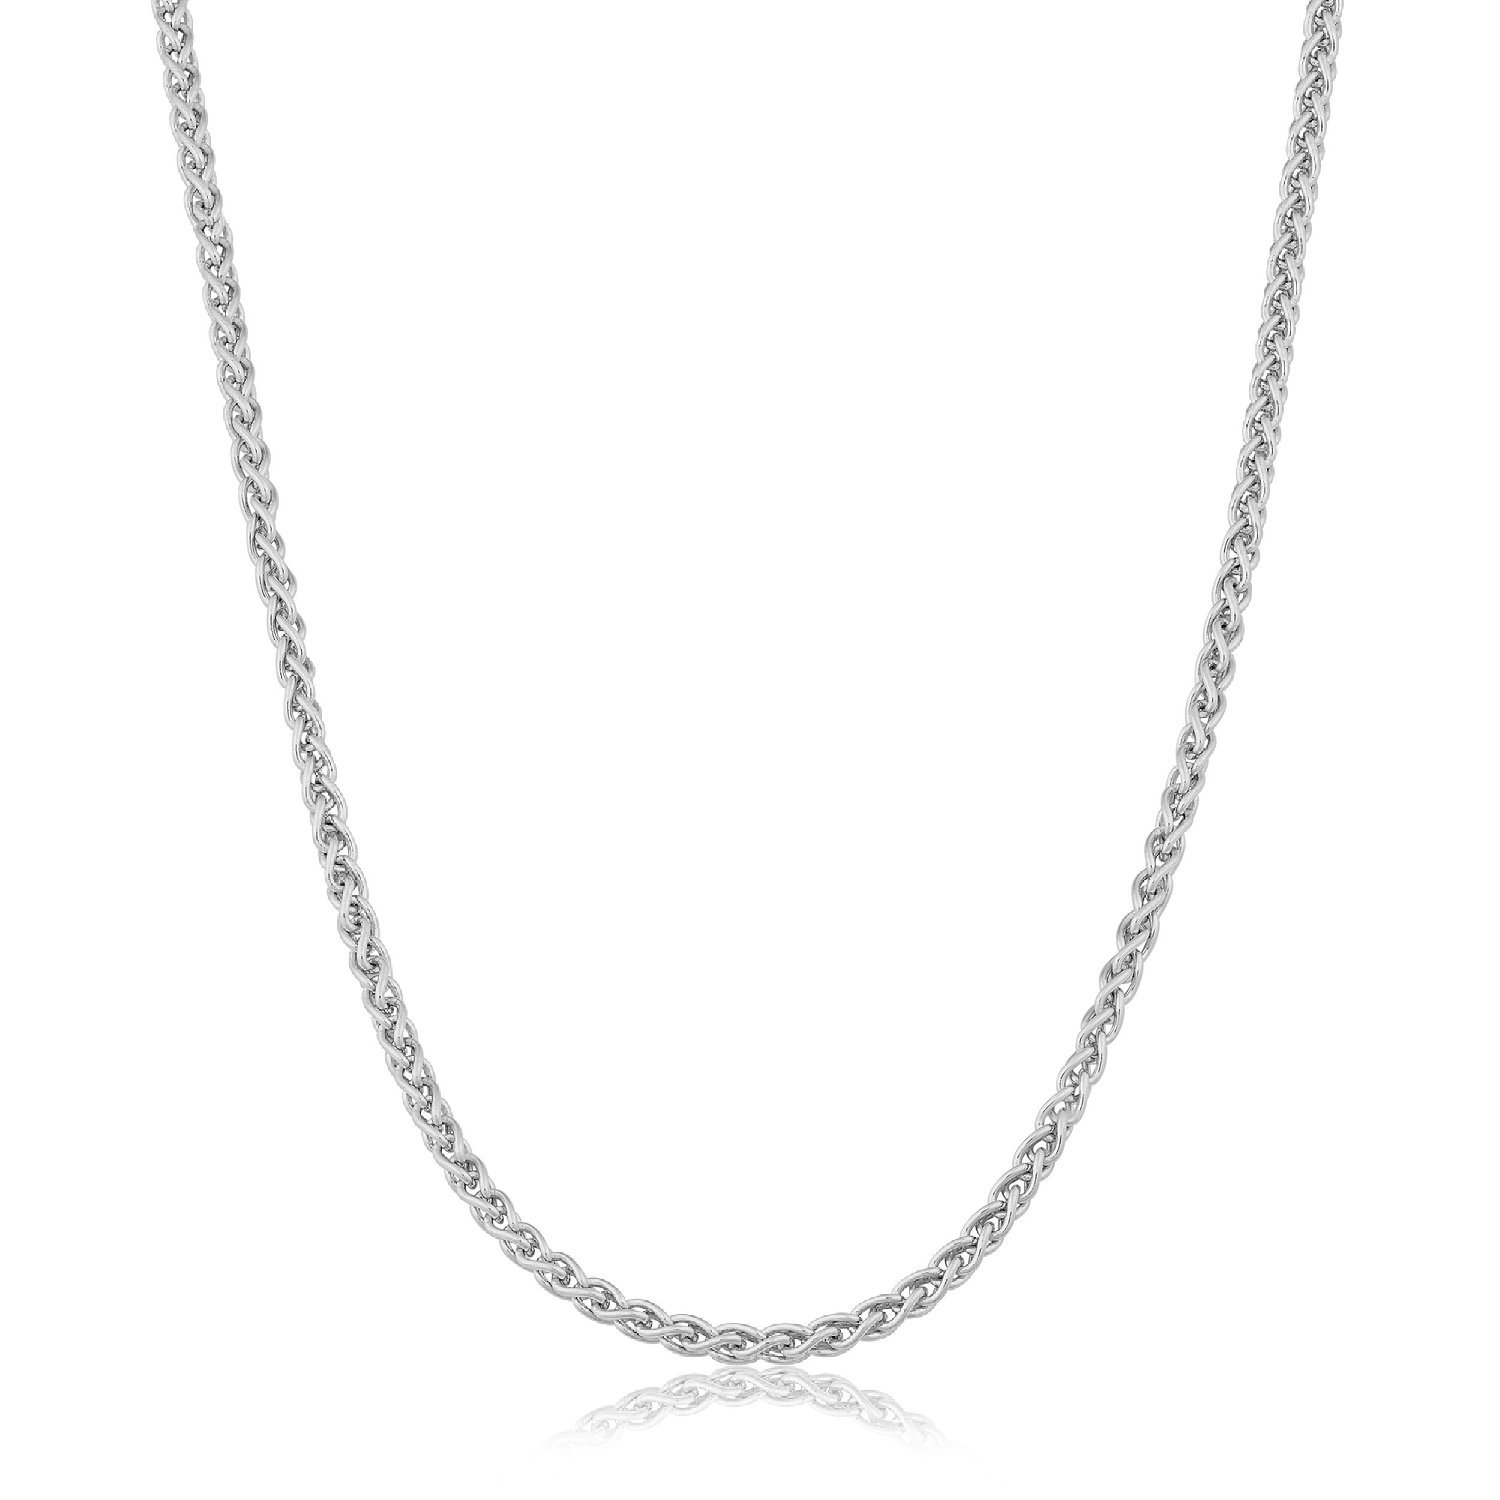 Watch Store USA Sterling Silver 1.2mm Round Wheat Chain (14, 16, 18, 20, 22, 24, 30 or 36 inch) (22 Inches)